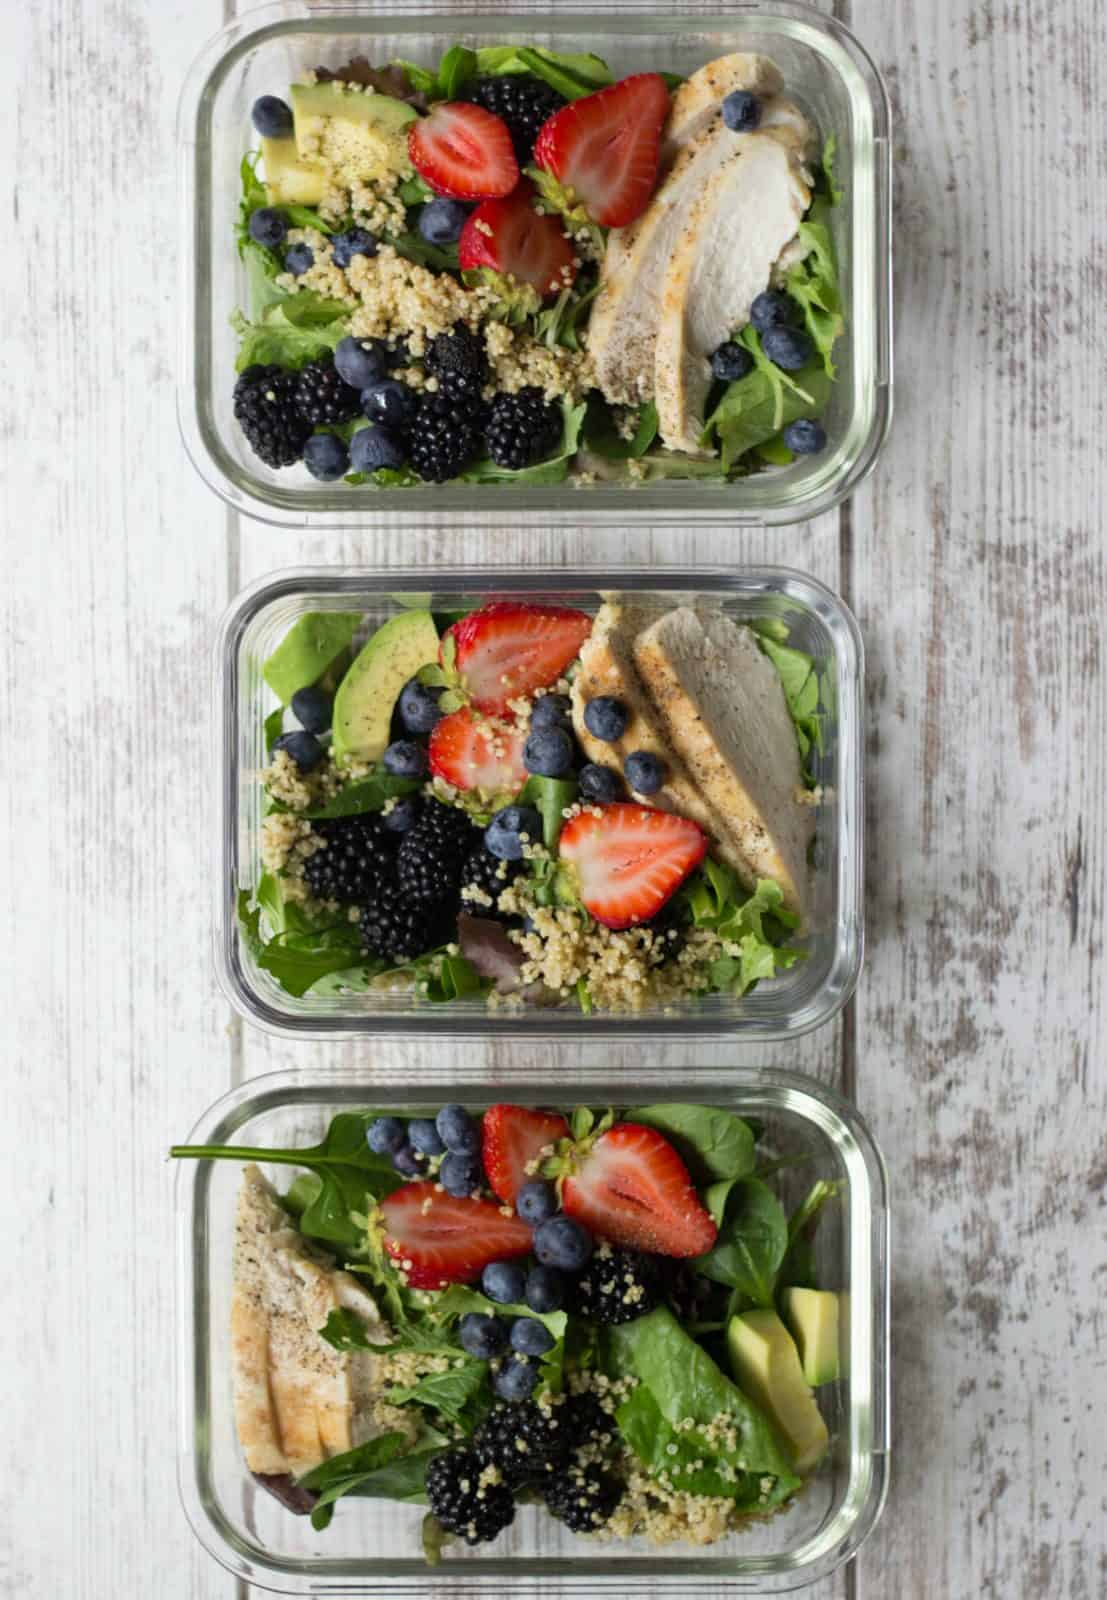 Berry Chicken Salad with Honey Balsamic Vinaigrette in meal prep containers.